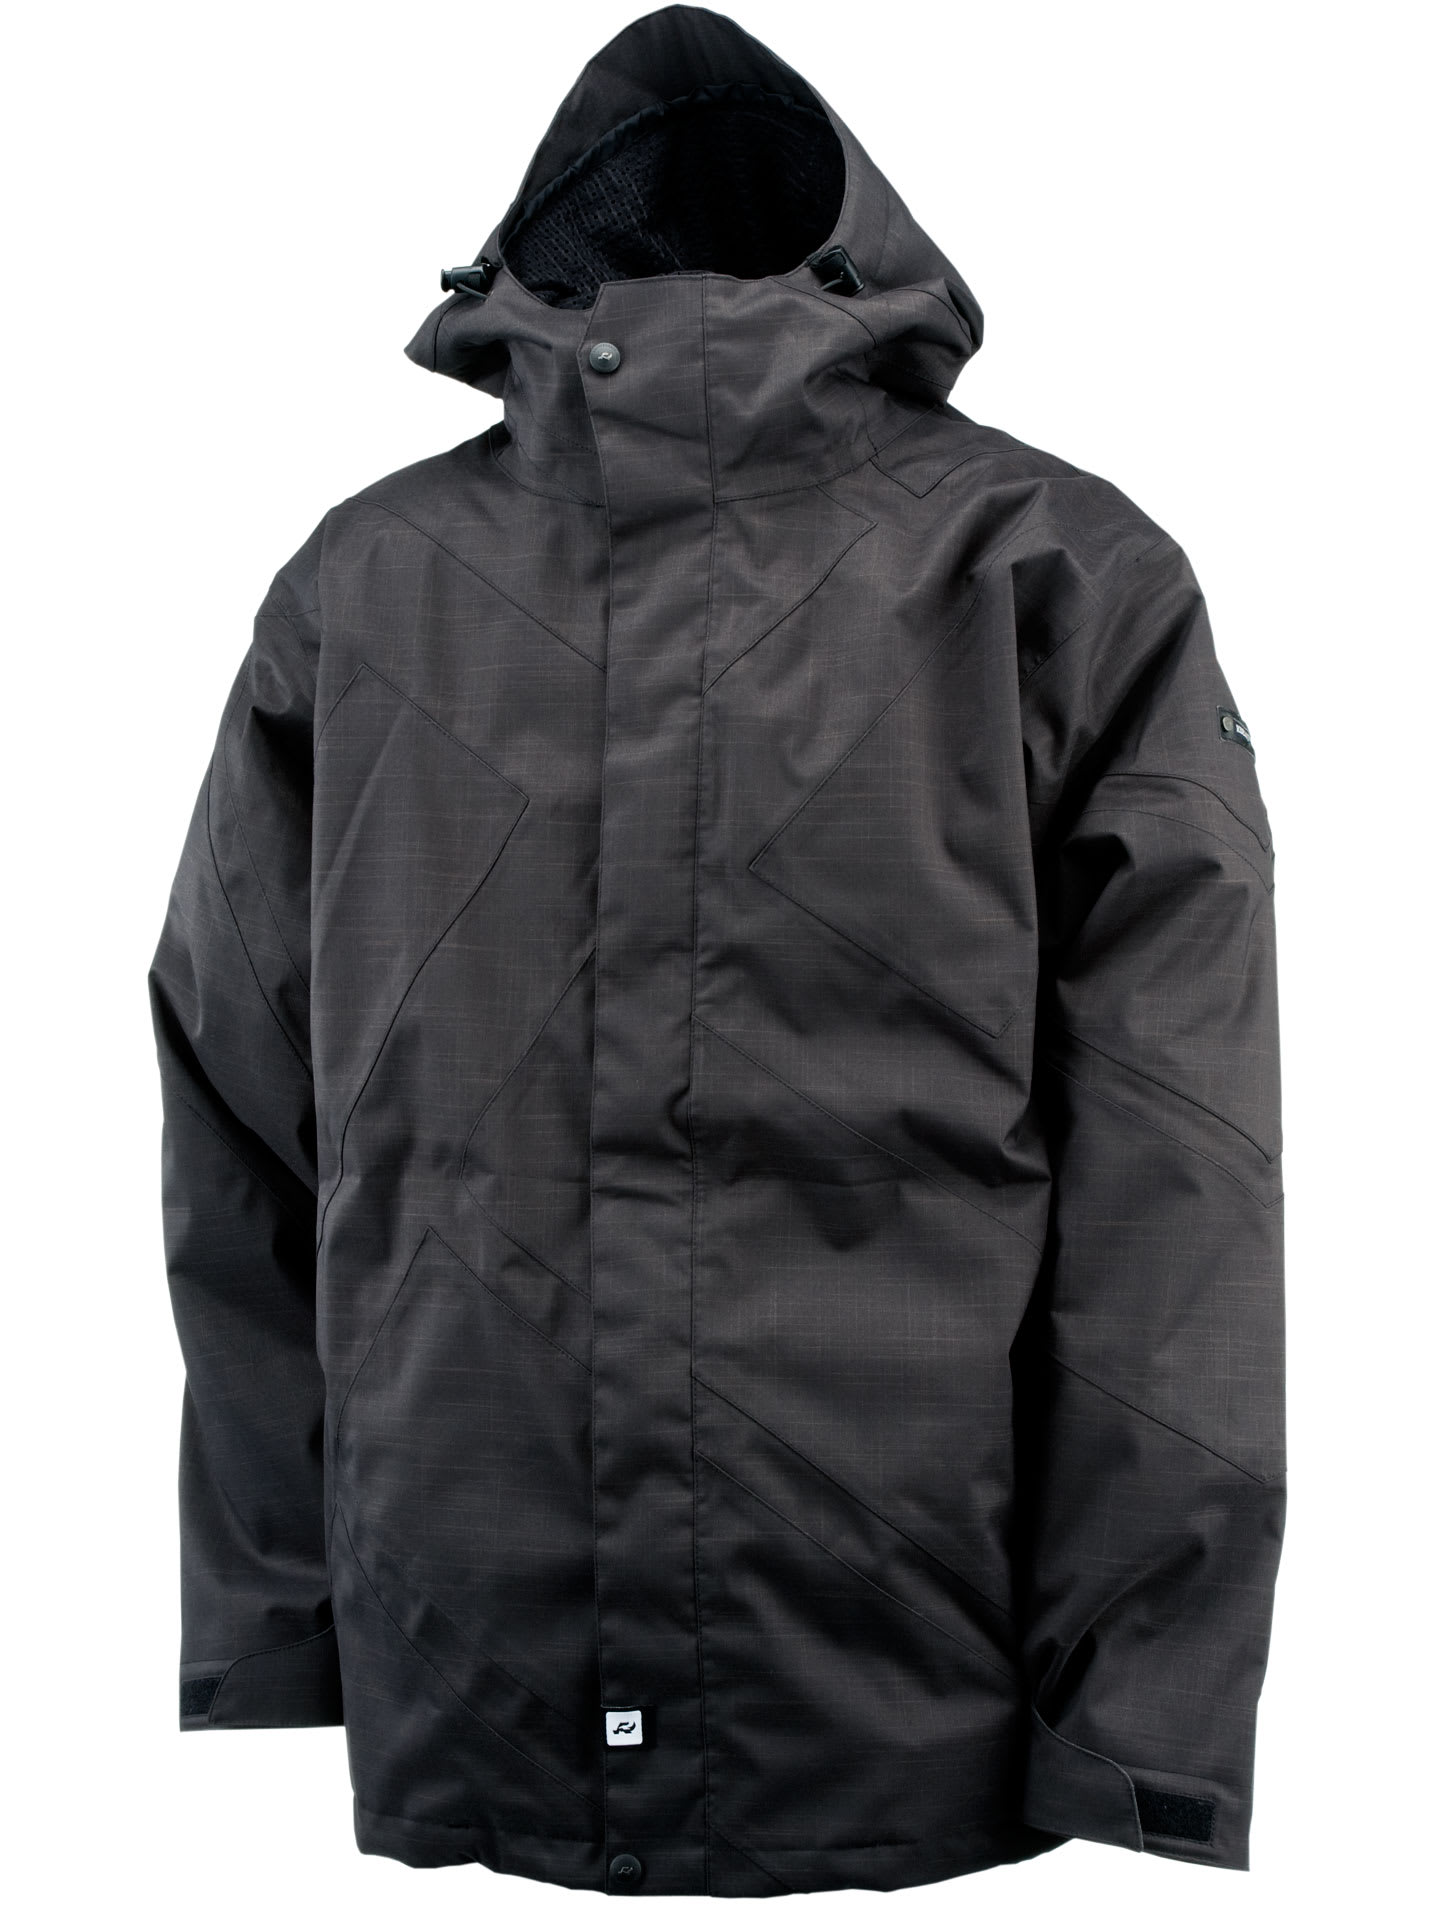 Shop for Ride Georgetown Snowboard Jacket Black - Men's